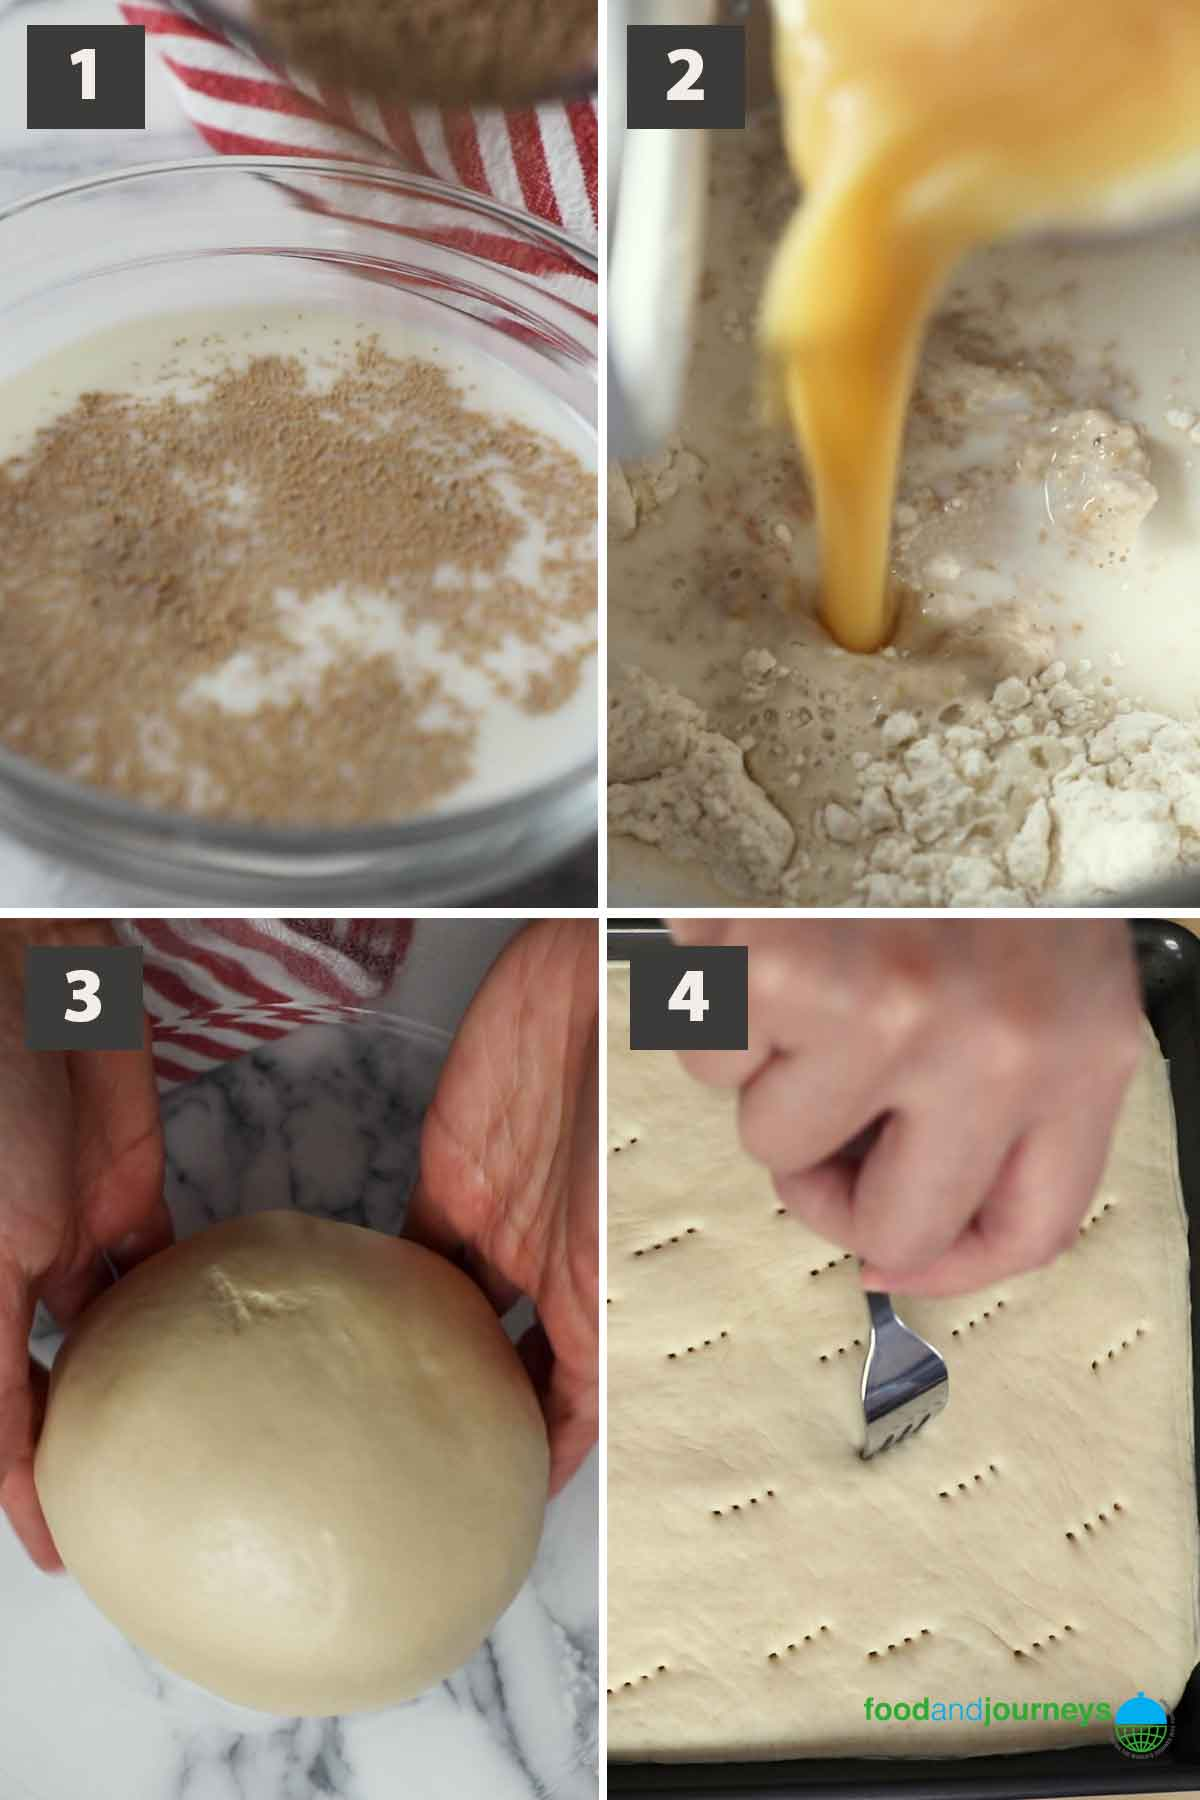 Latest - Jul2021, First part of a collage of images showing the step by step process of making German Butter Cake at home.